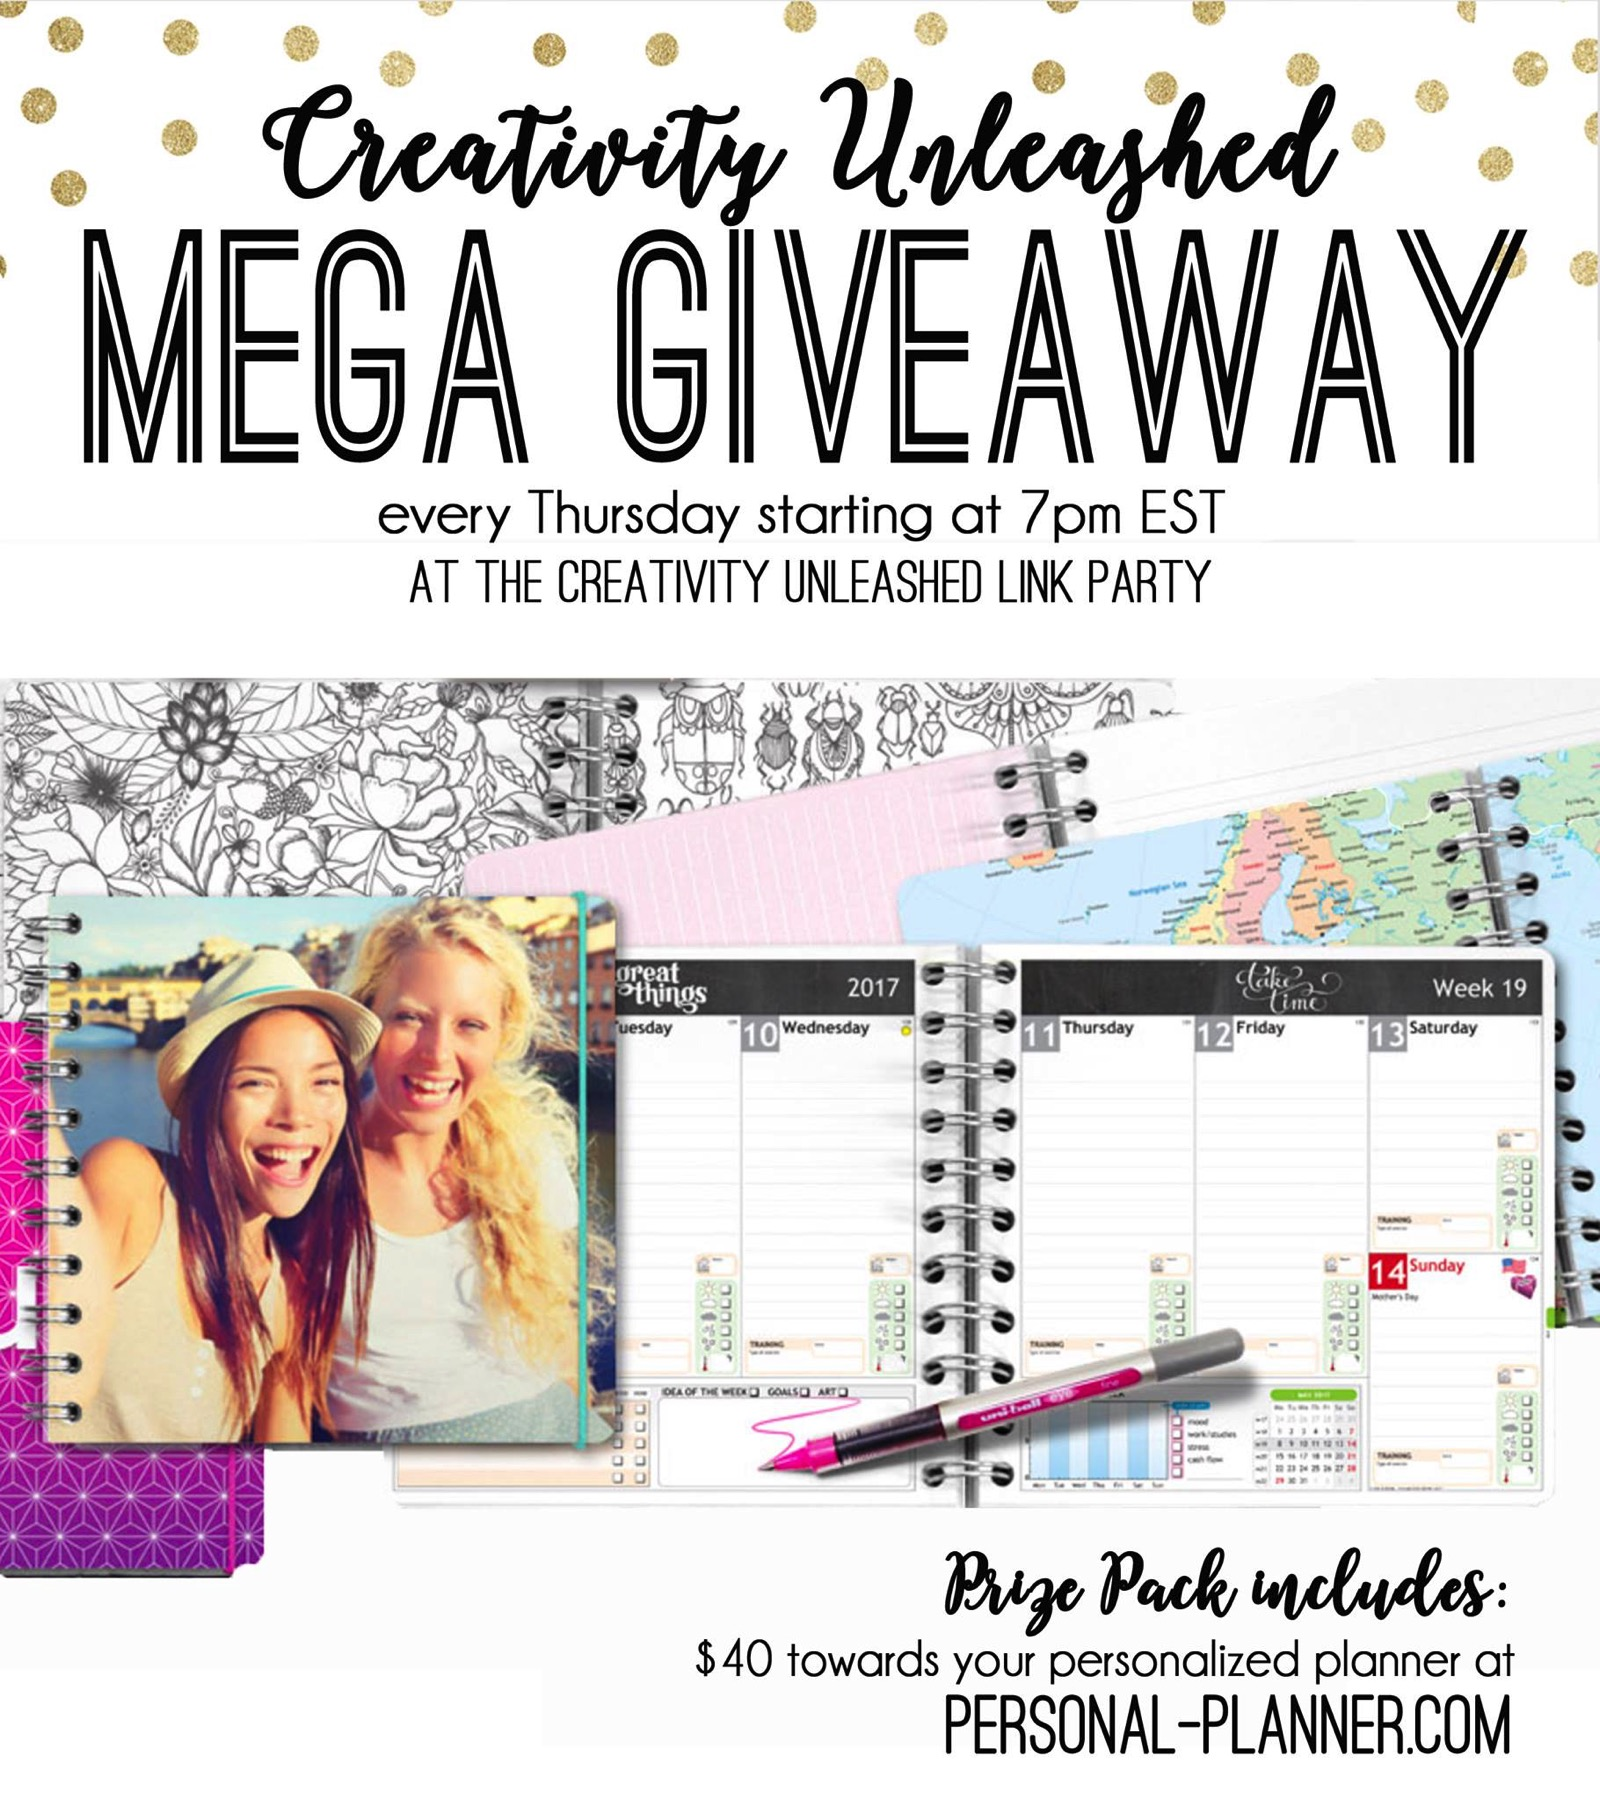 Share your latest projects, browse hundreds of others for inspiration, and enter to win a free personal planner at the Creativity Unleashed party!